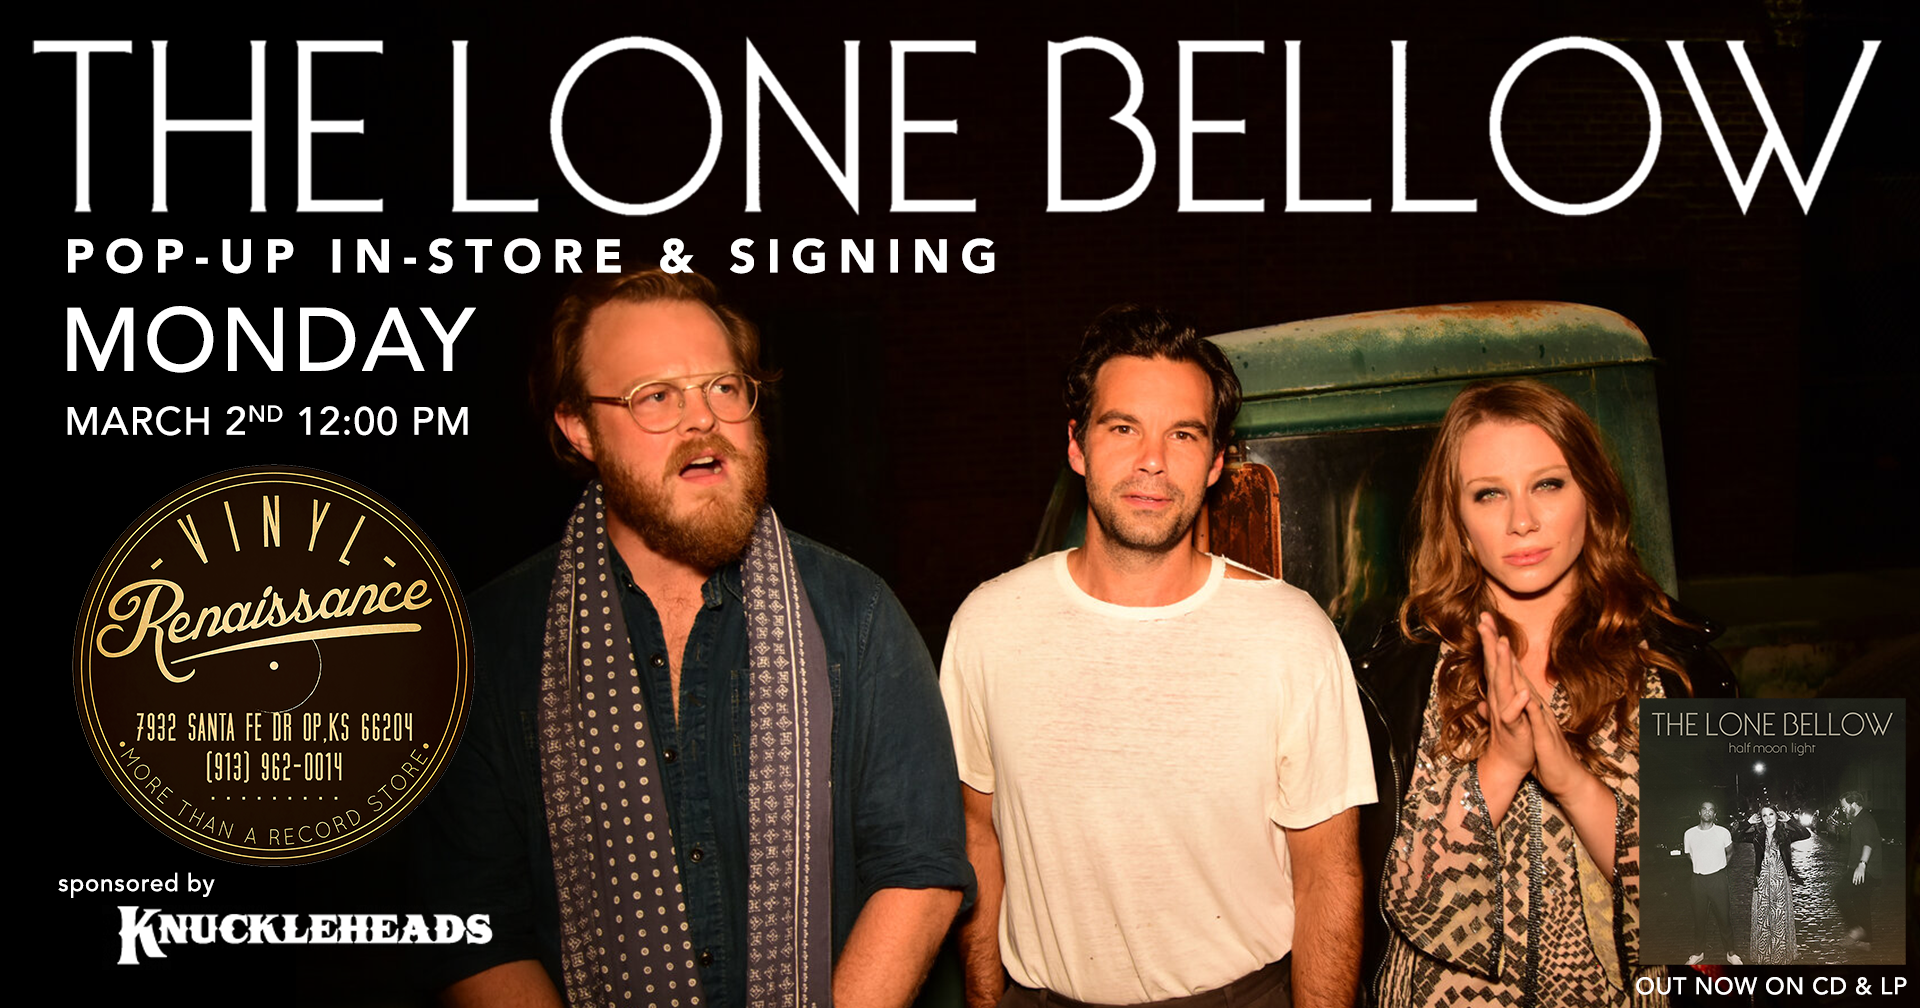 The Lone Bellow Pop-Up In-Store & Signing - Monday March 2nd 12PM